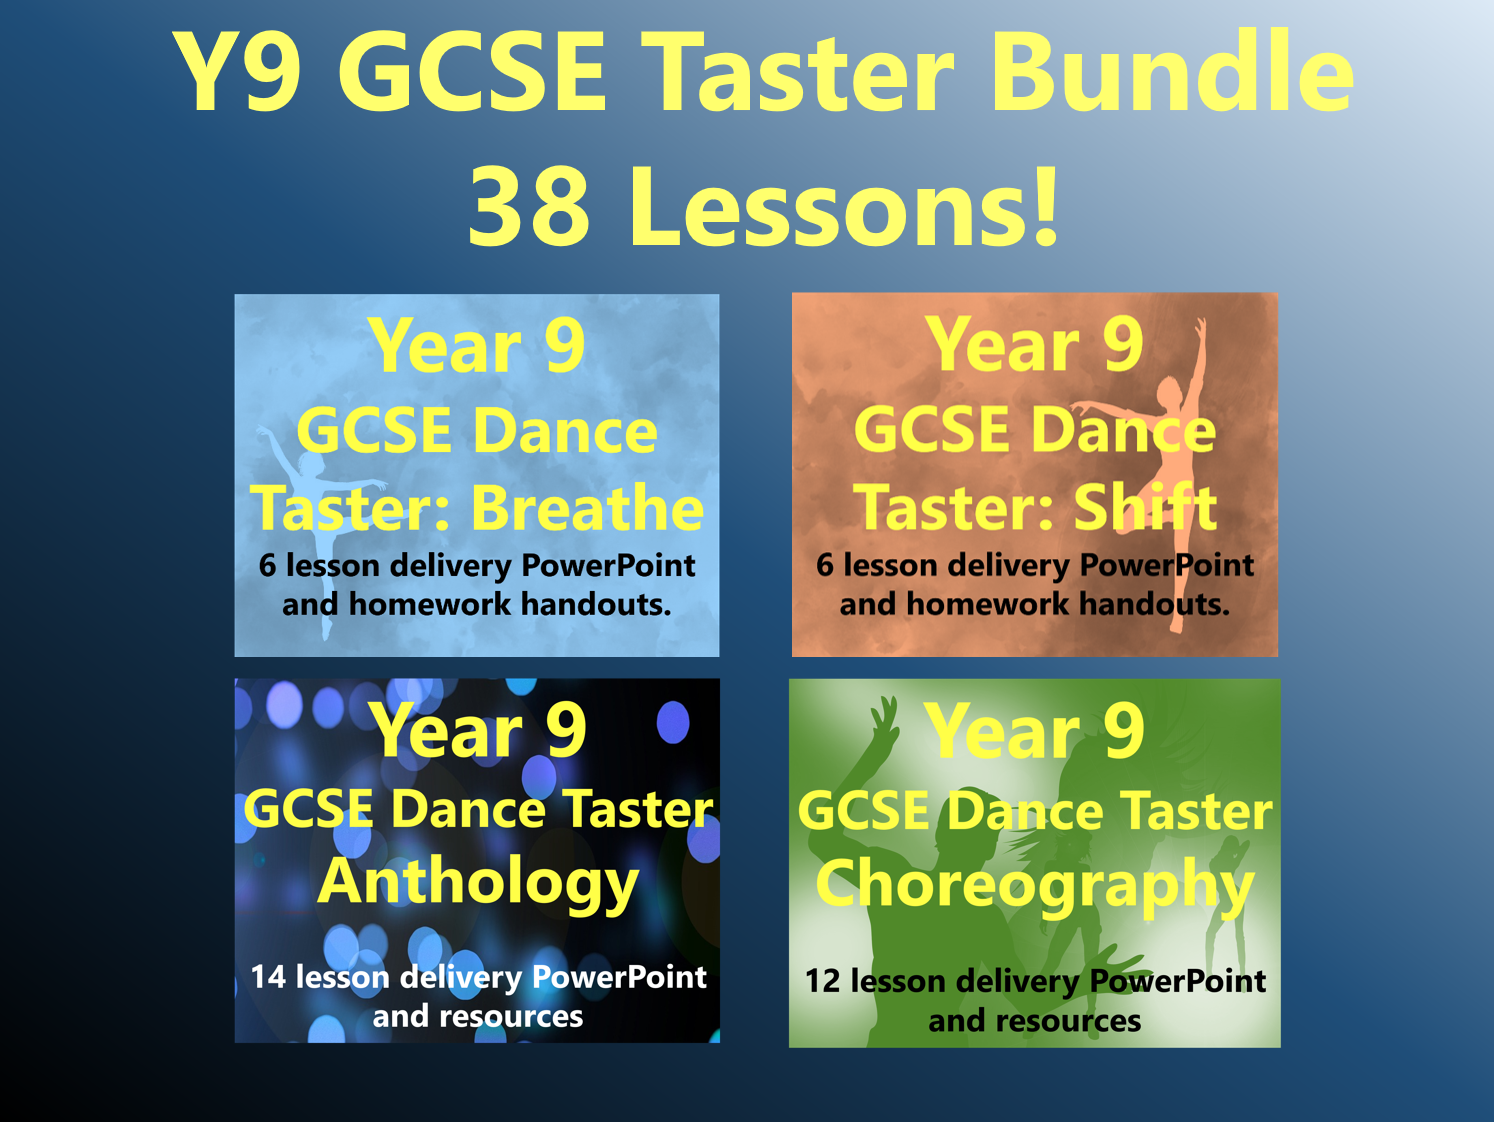 Year 9 GCSE Dance Taster Bundle (38 Lessons!)